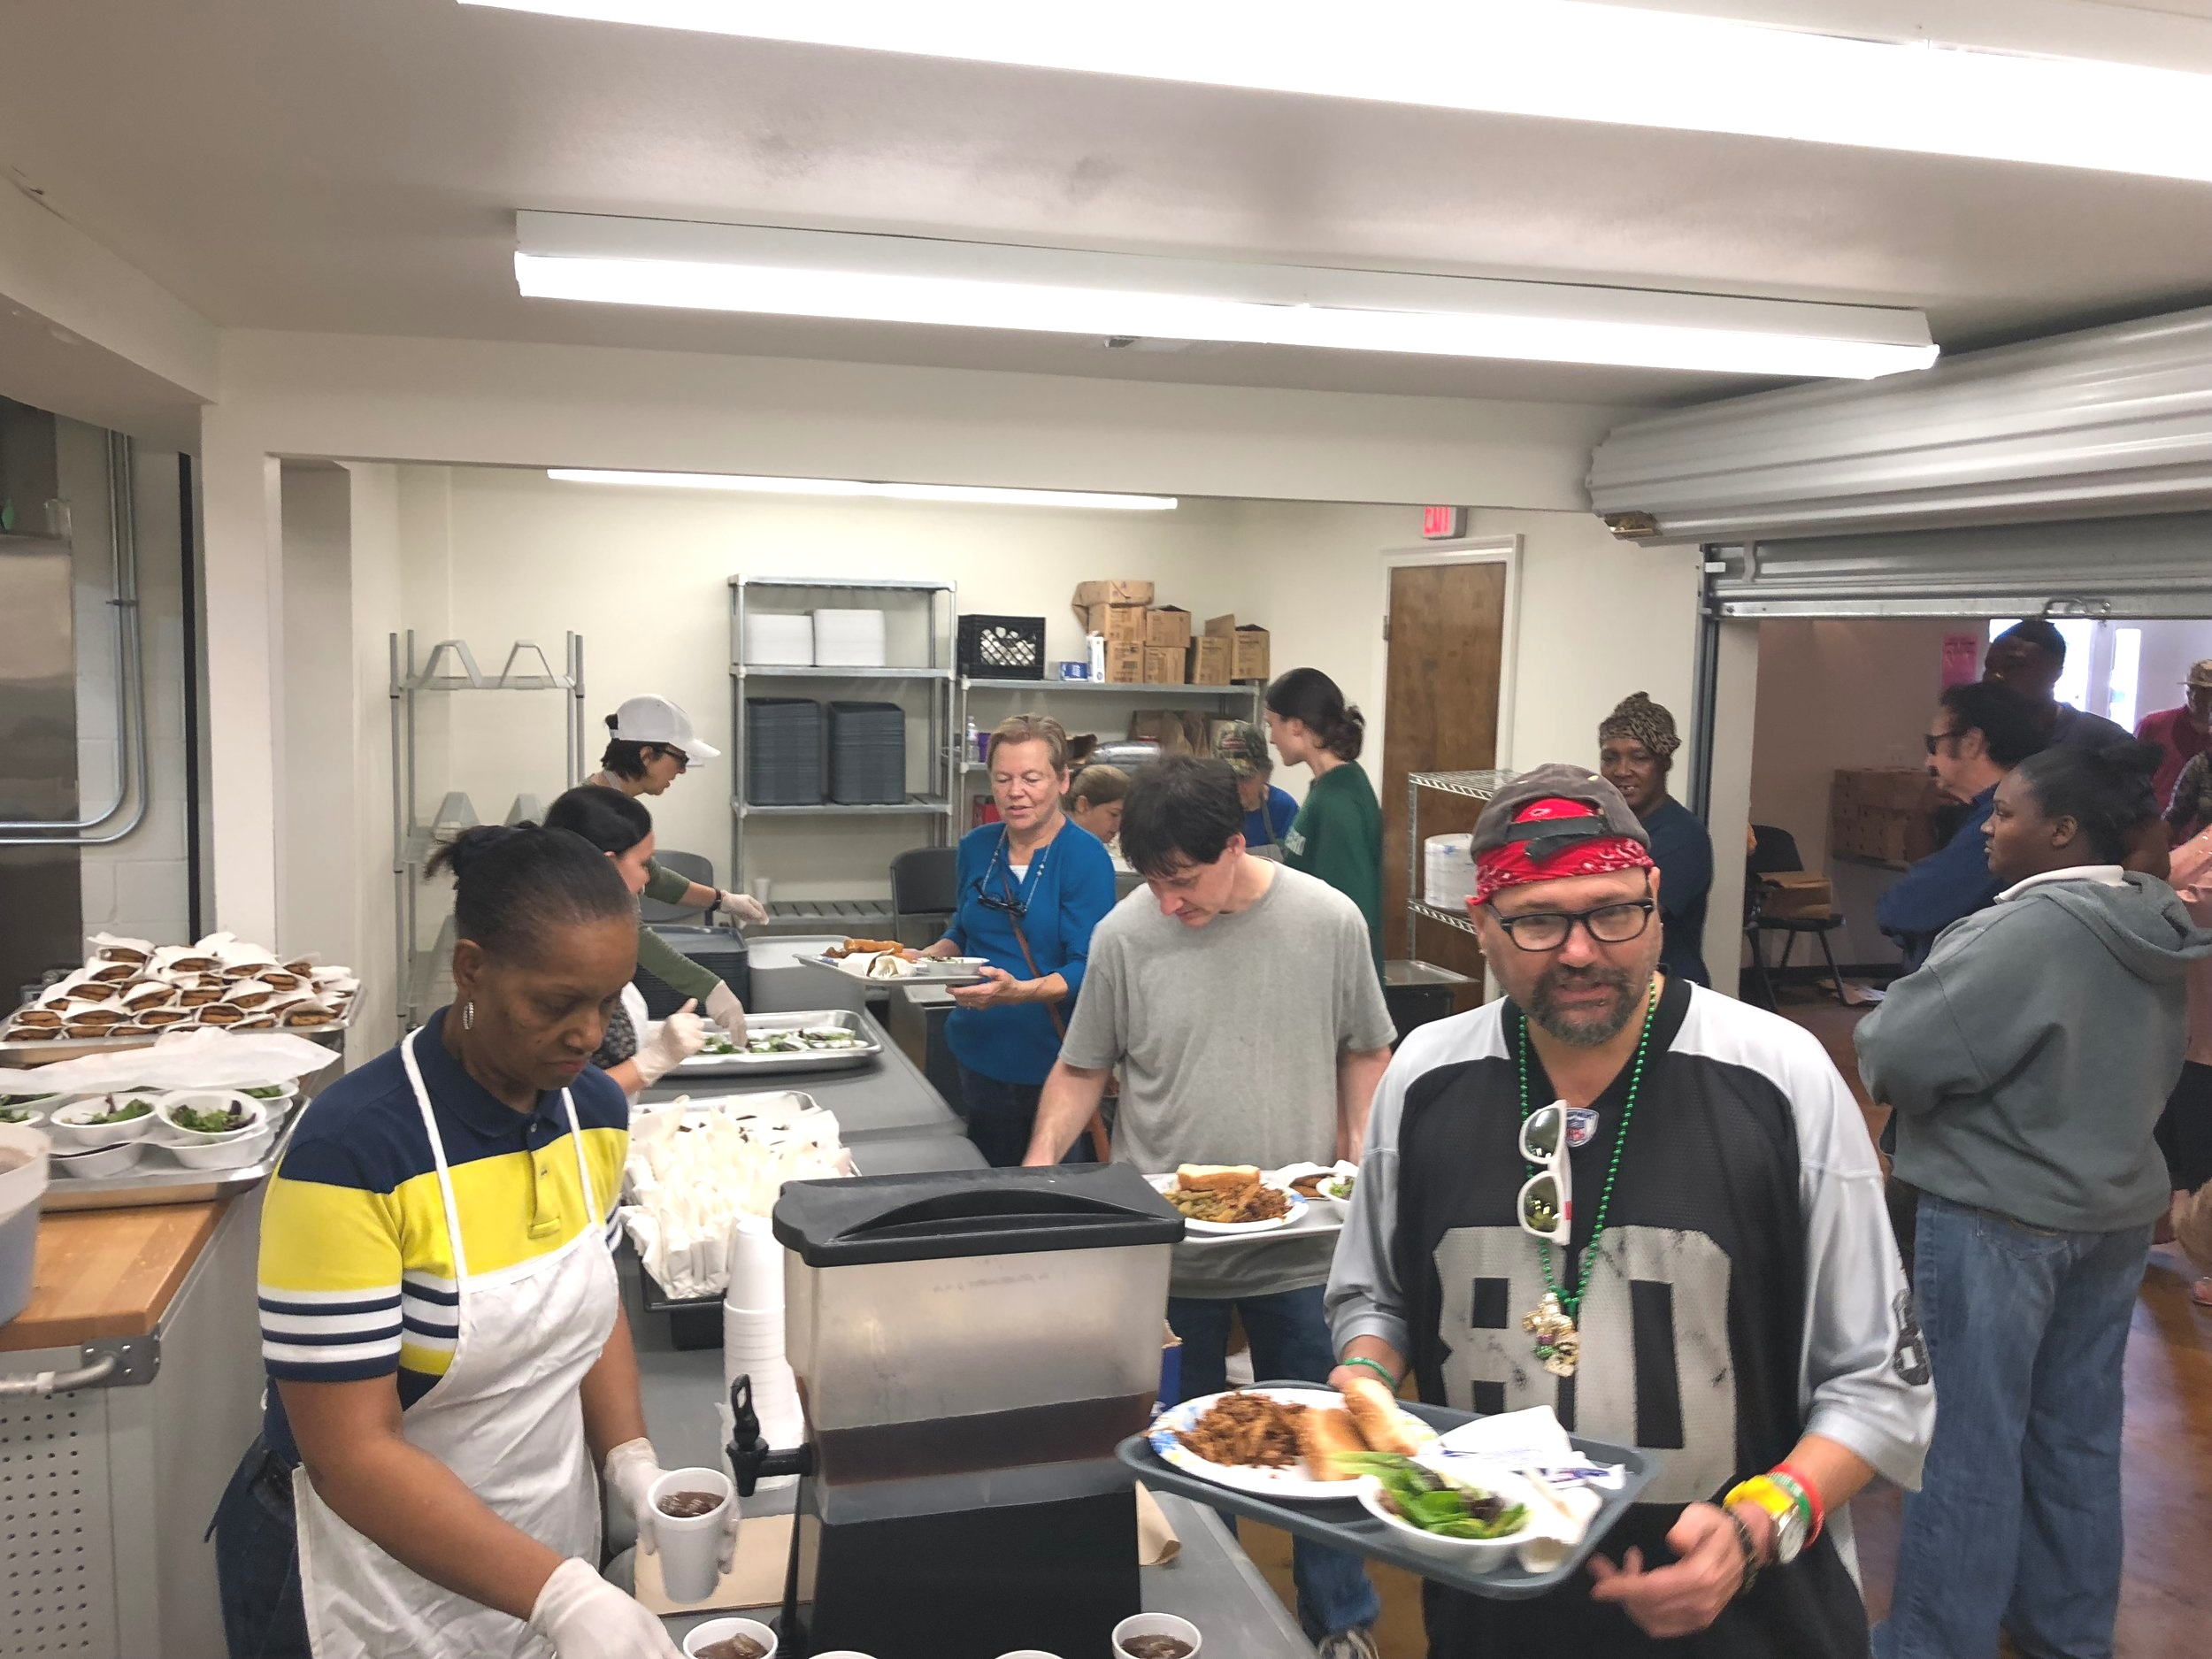 Free hot Meals - Join our Hand of Hope Family for a free hot lunch every Tuesday and Thursday from 11 a.m. until 12:45 p.m. located next to Our Daily Bread. Come just as you are, and bring your family, friends, and neighbors. Everyone is welcomed and accepted!